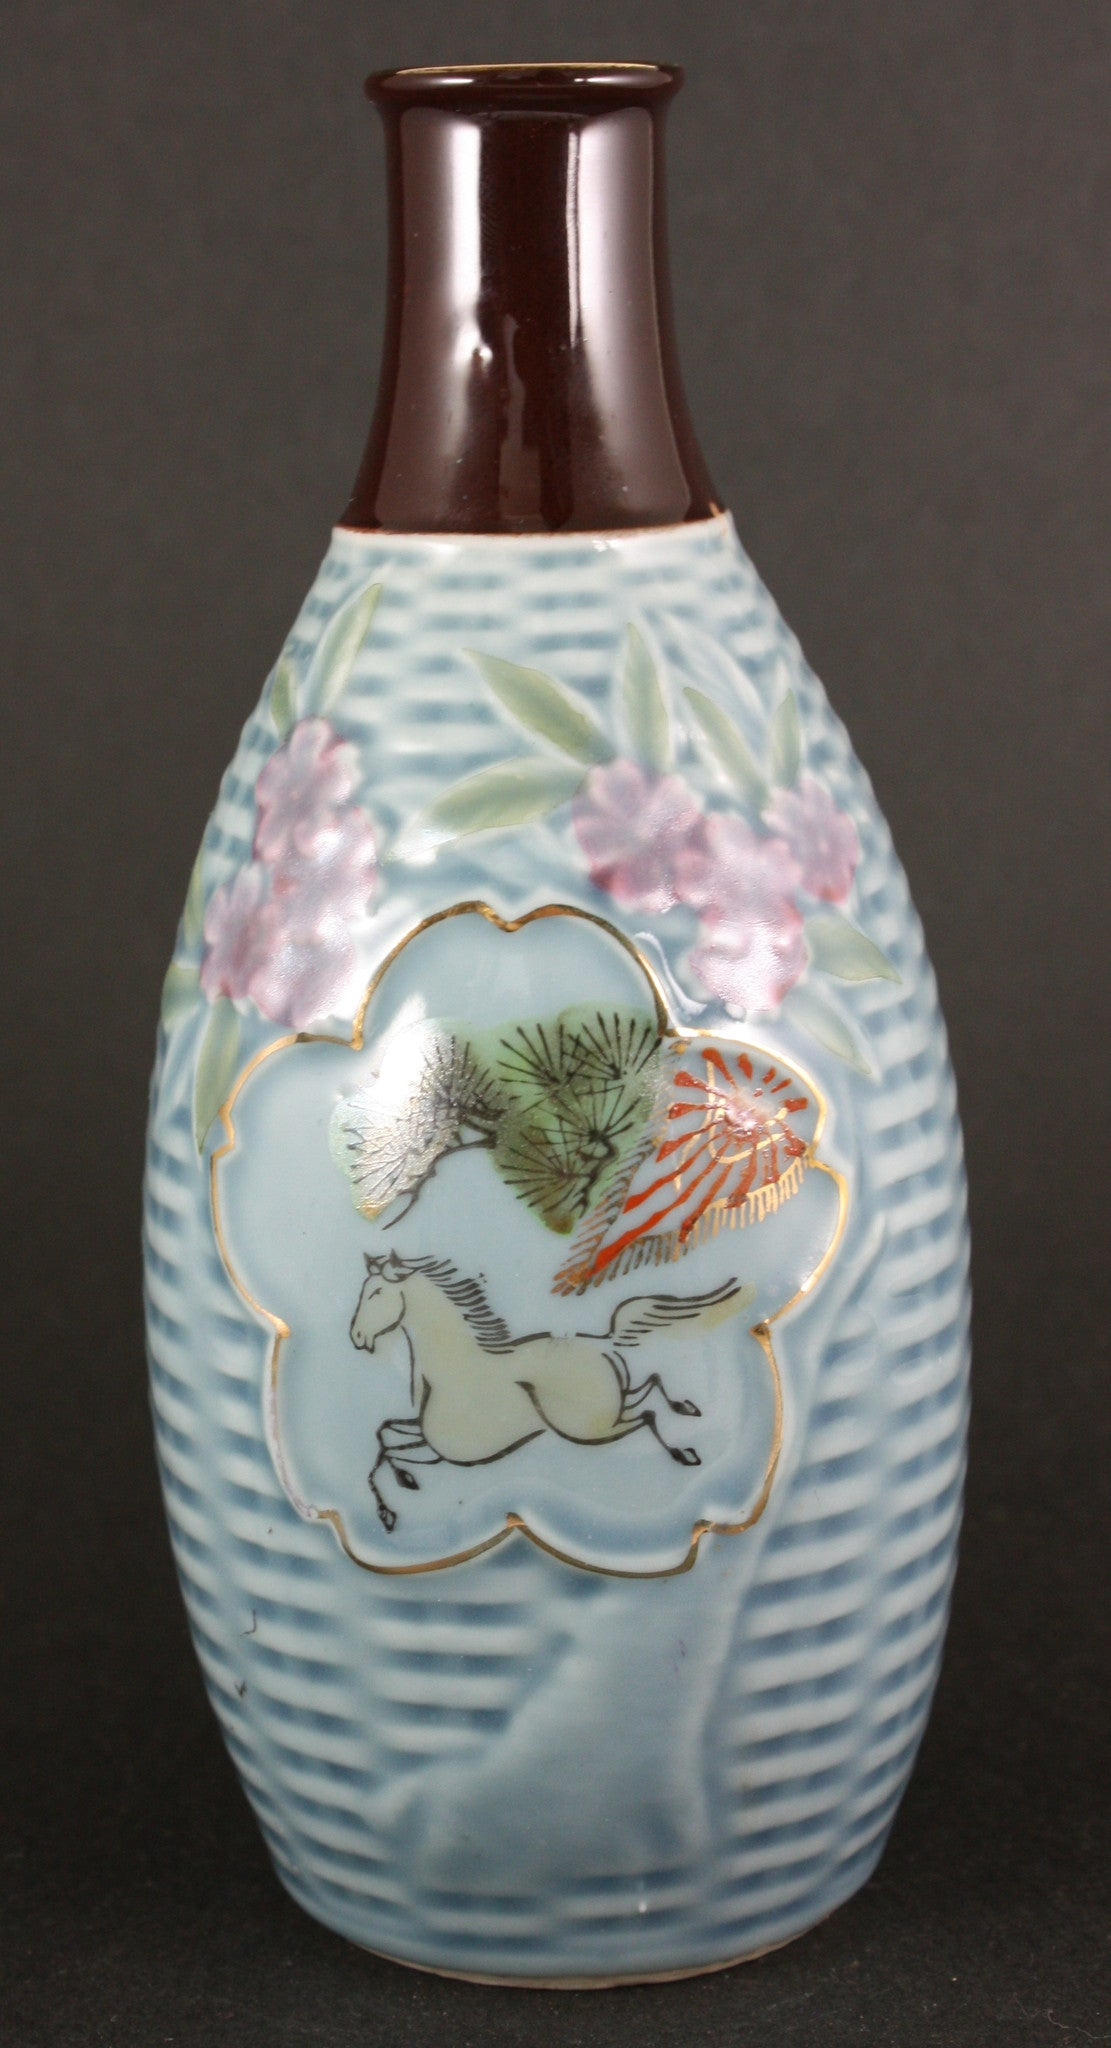 Antique Japanese Military Horse Blossoms Transport Army Sake Bottle